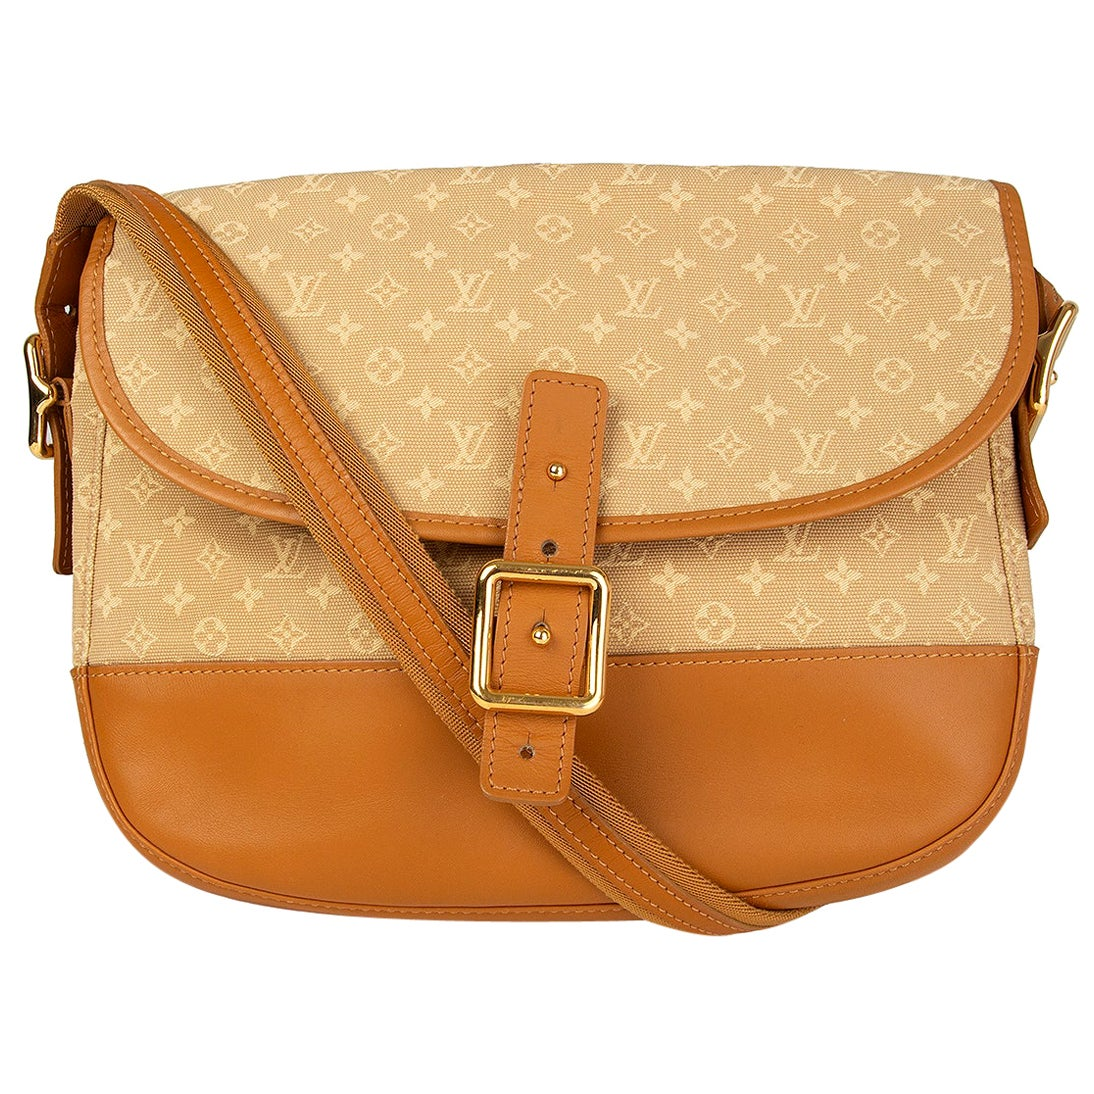 LOUIS VUITTON beige Monogram Mini Lin MAJORIE Shoulder Bag